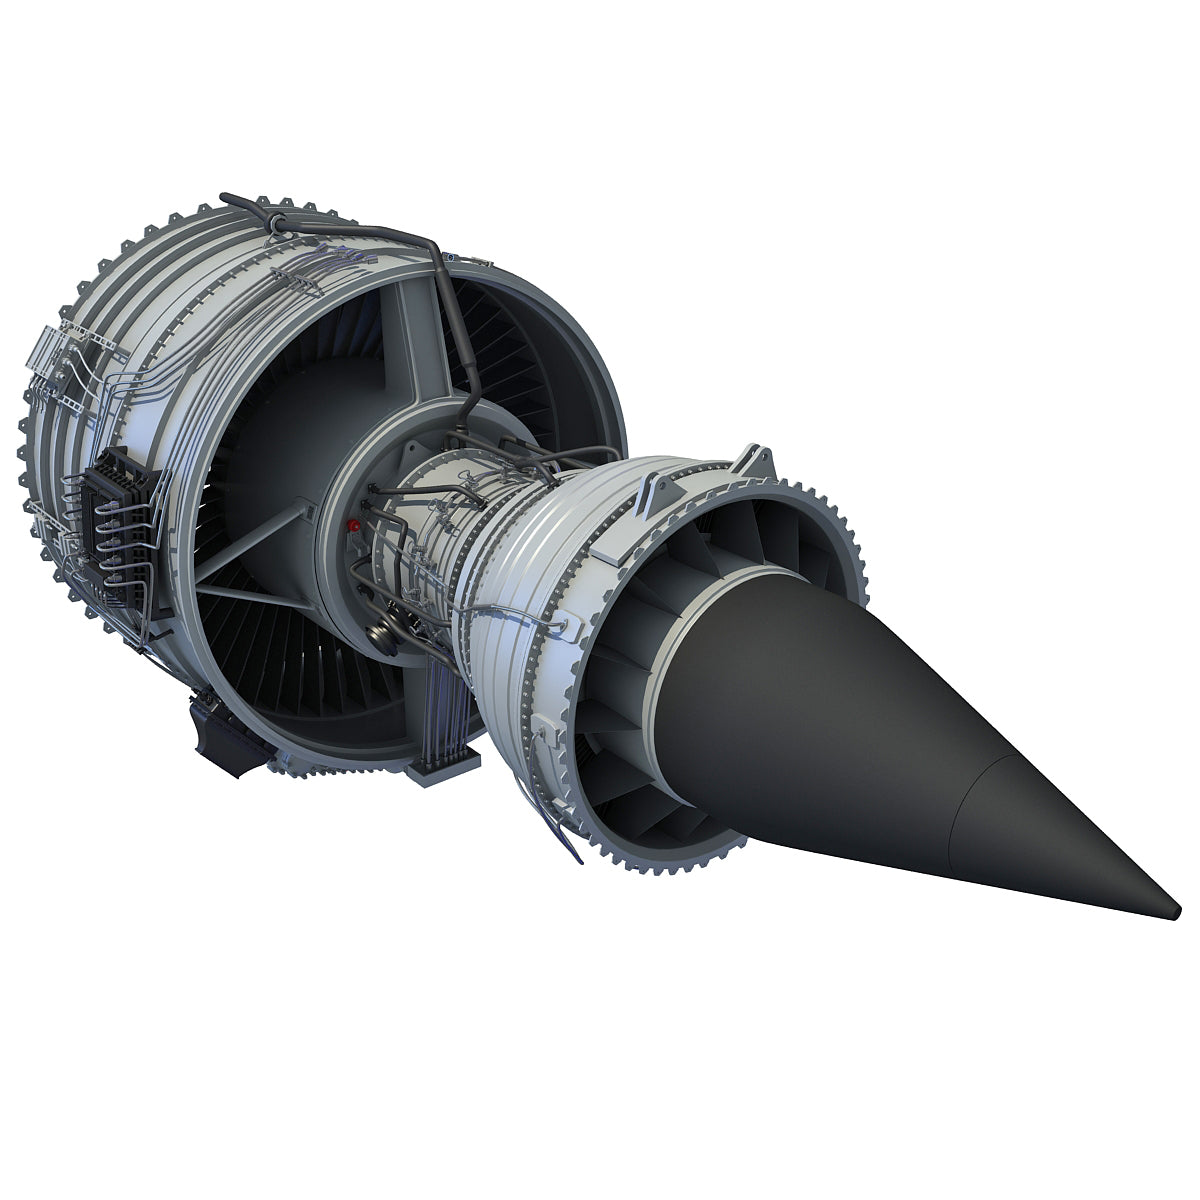 3D Aircraft Jet Turbofan Engine Model